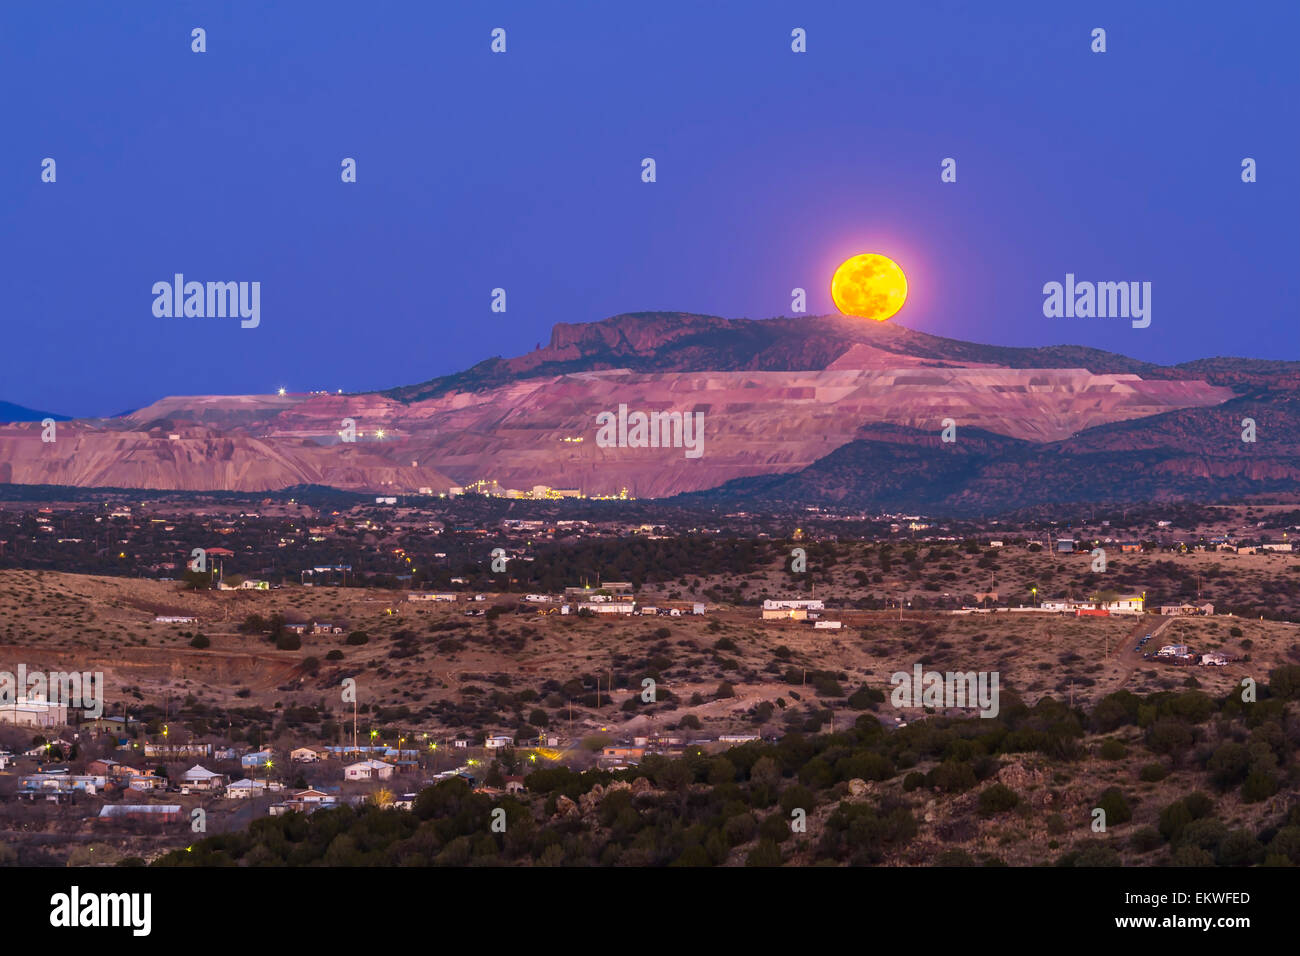 The March 5, 2015 mini-moon rises over the Santa Rita Copper Mine and cliff formation known locally as the Kneeling Stock Photo